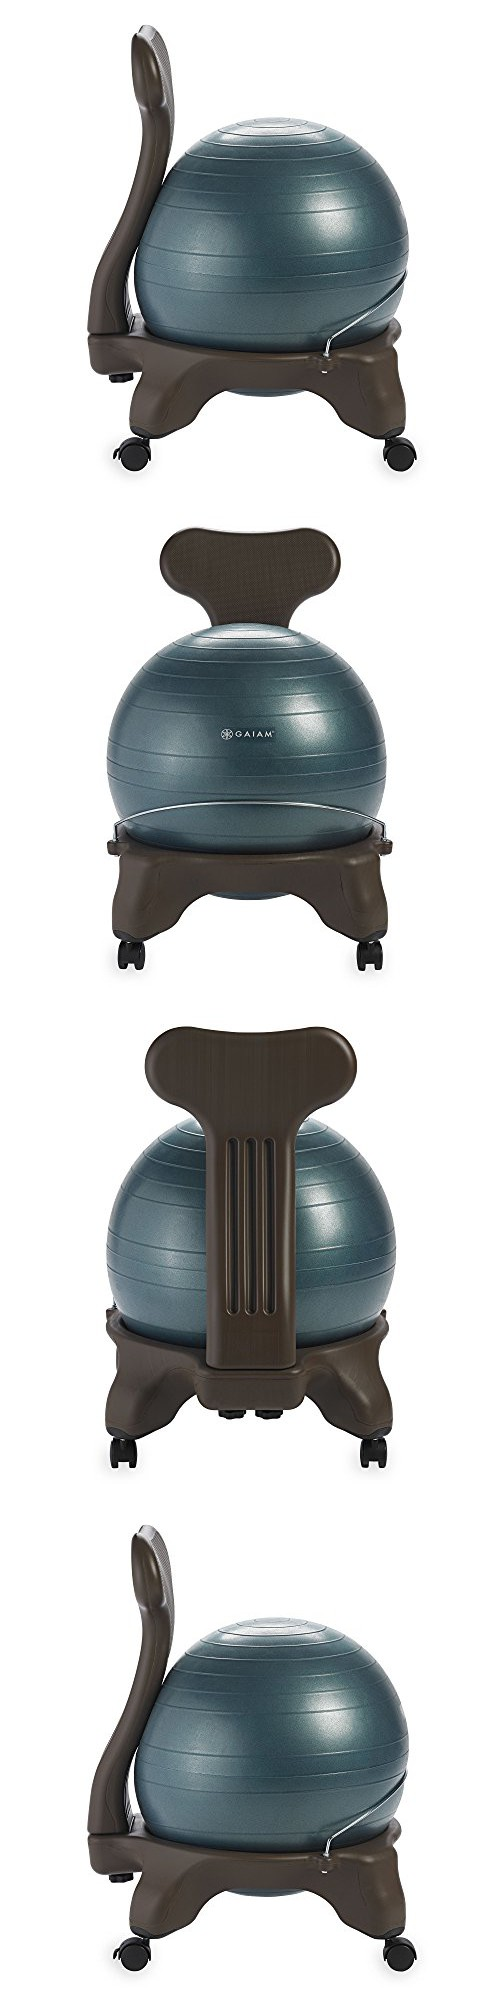 chairsbalance balance stability review for yoga size ball fascinating guide uncategorized gaiam furnitures of holder amazing chair full with